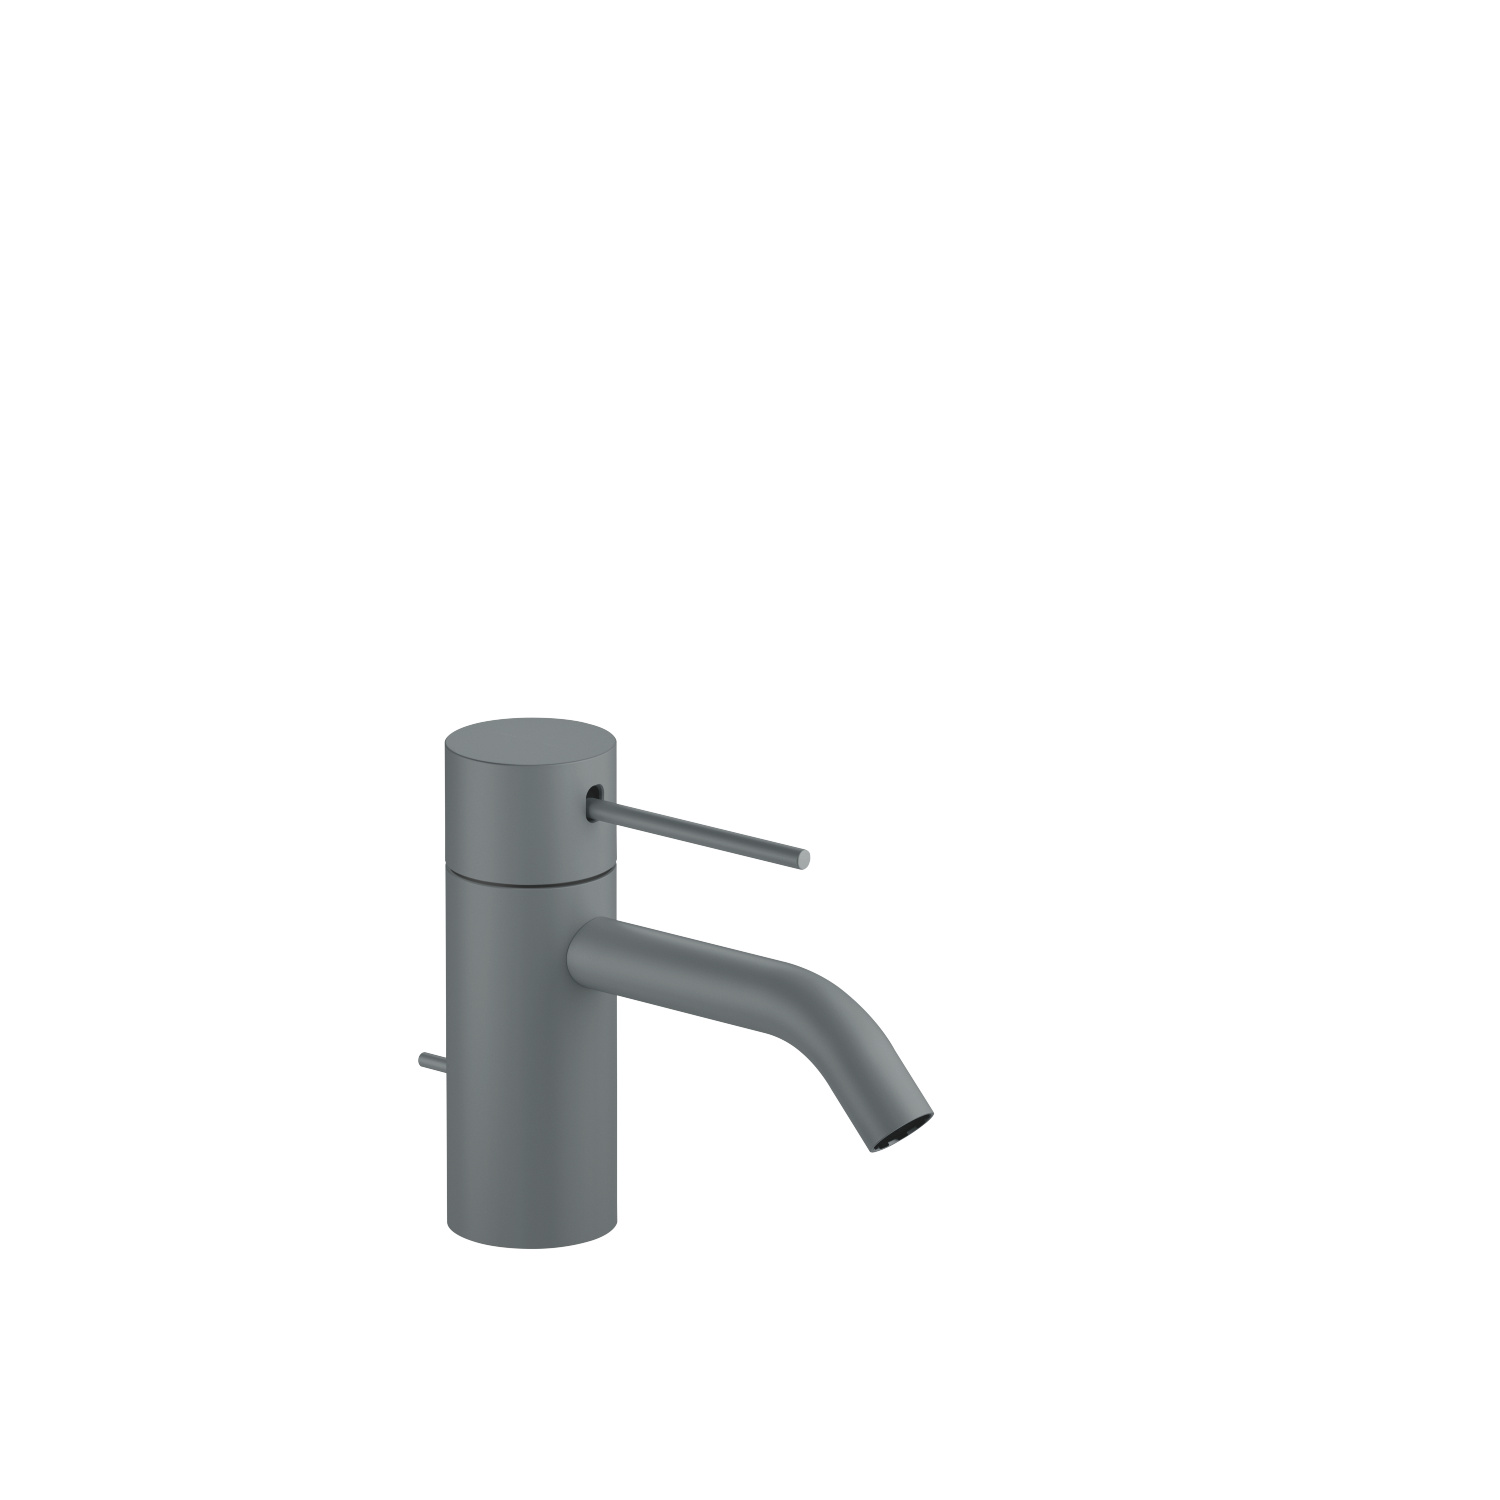 META SLIM Single-lever basin mixer with pop-up waste - light grey